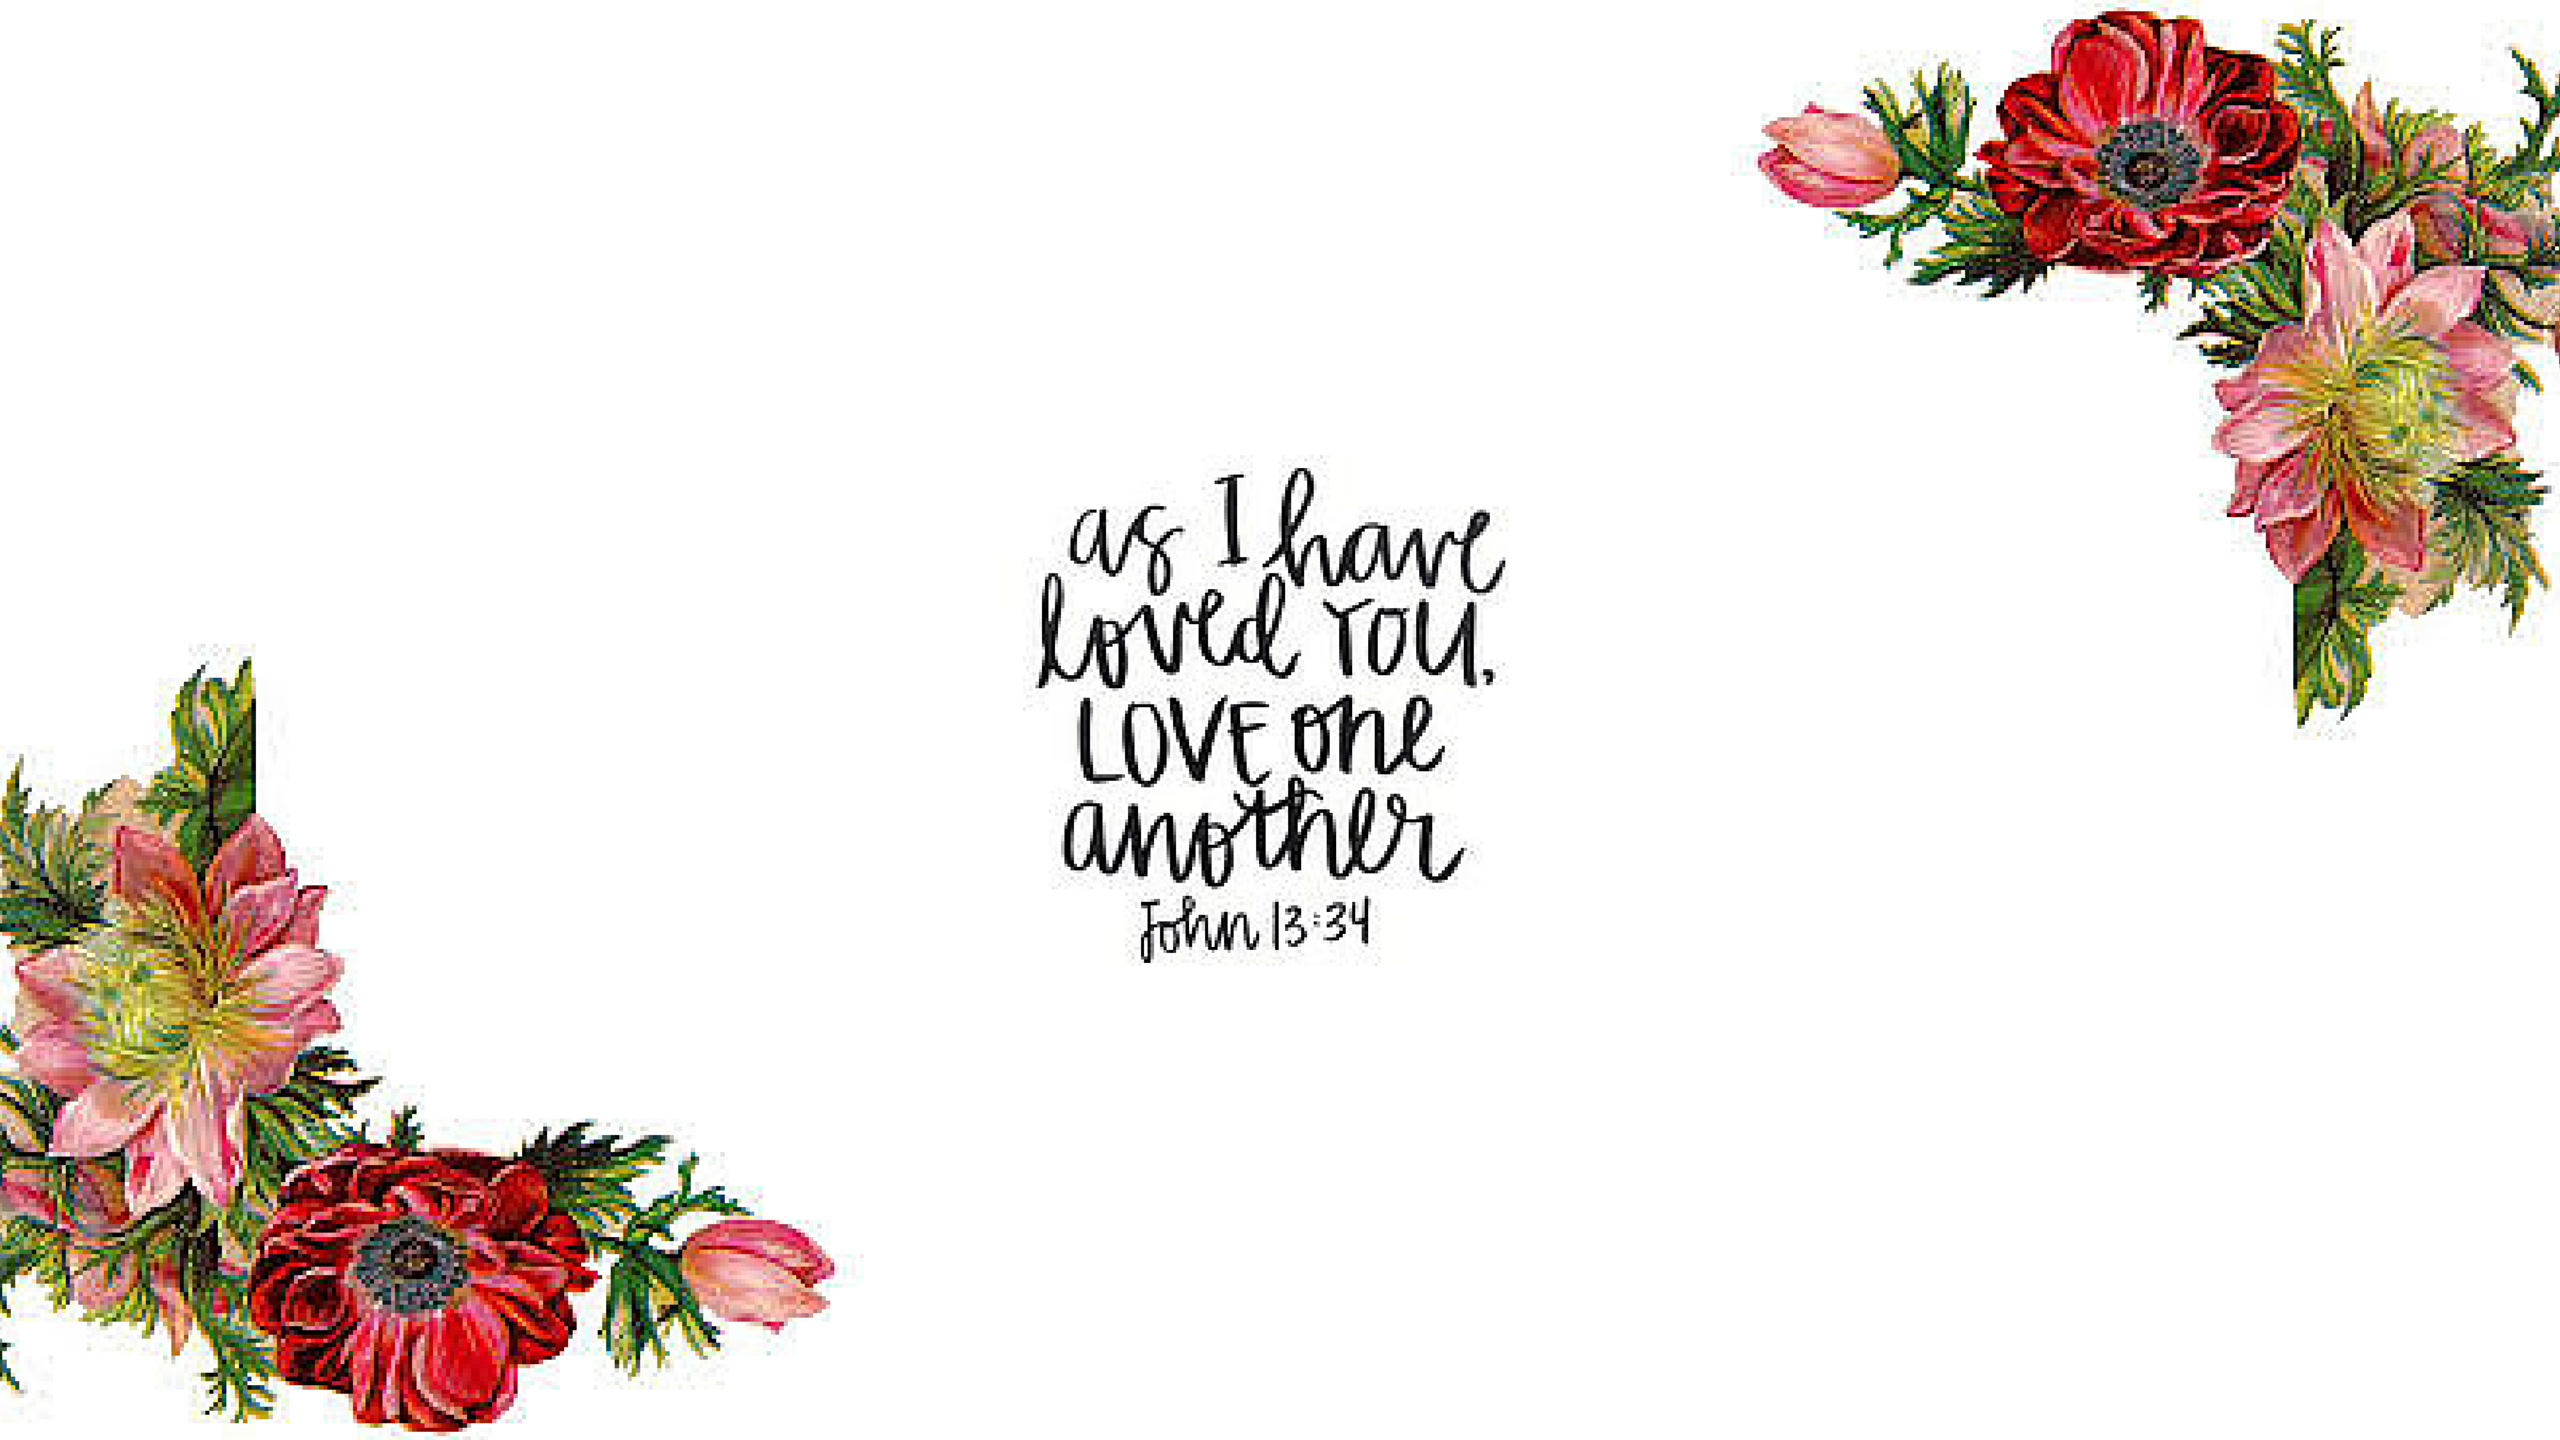 I Make These Wallpapers So I Can Remind Myself When I Open My Laptop Everyday That I Will Always Have Bible Verse Wallpaper Wallpaper Bible Christian Wallpaper